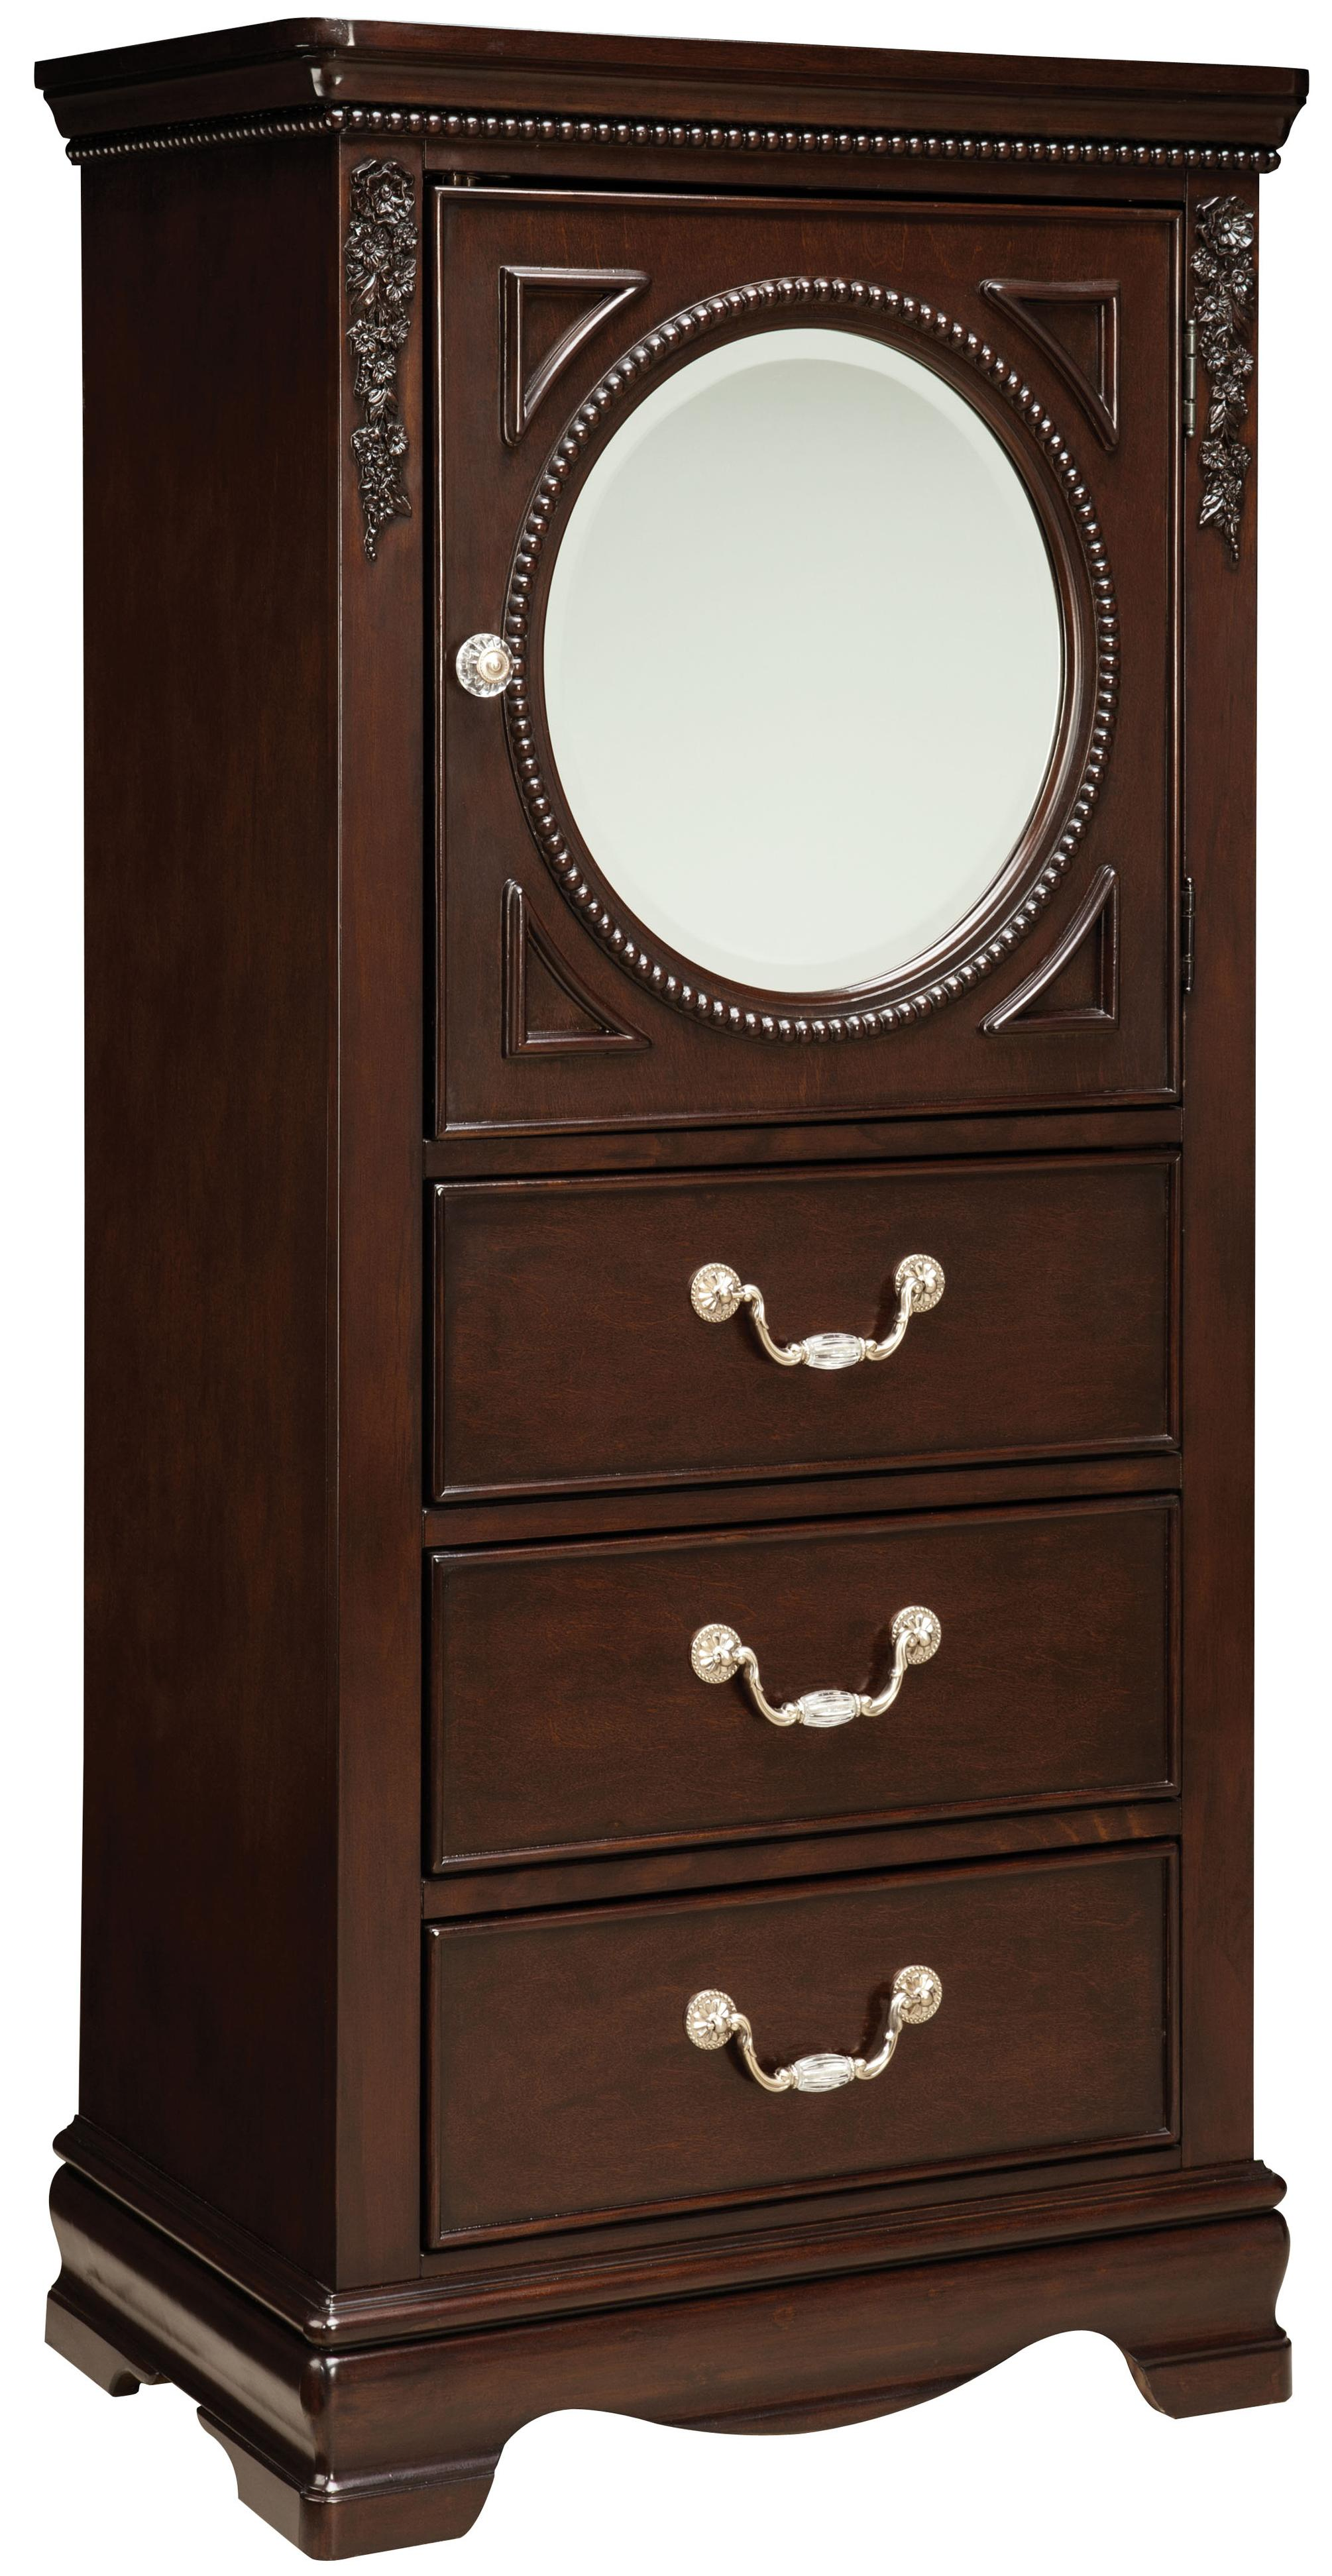 Standard Furniture Laurel Lingerie Chest   Item Number: 93765